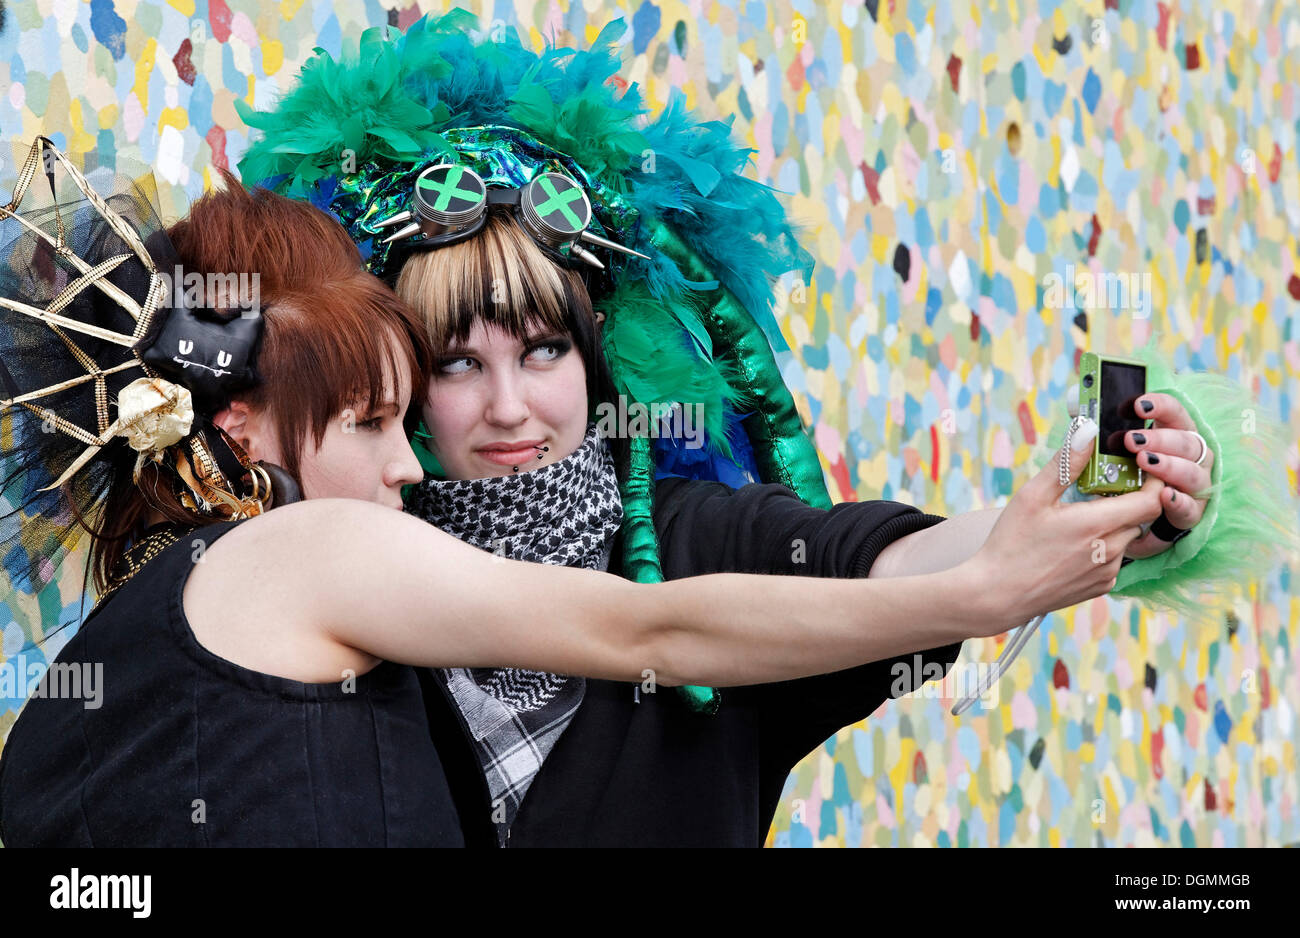 Two young women with bizarre headdress photographing themselves with their mobile phone, imaginative costumes, cosplayers - Stock Image